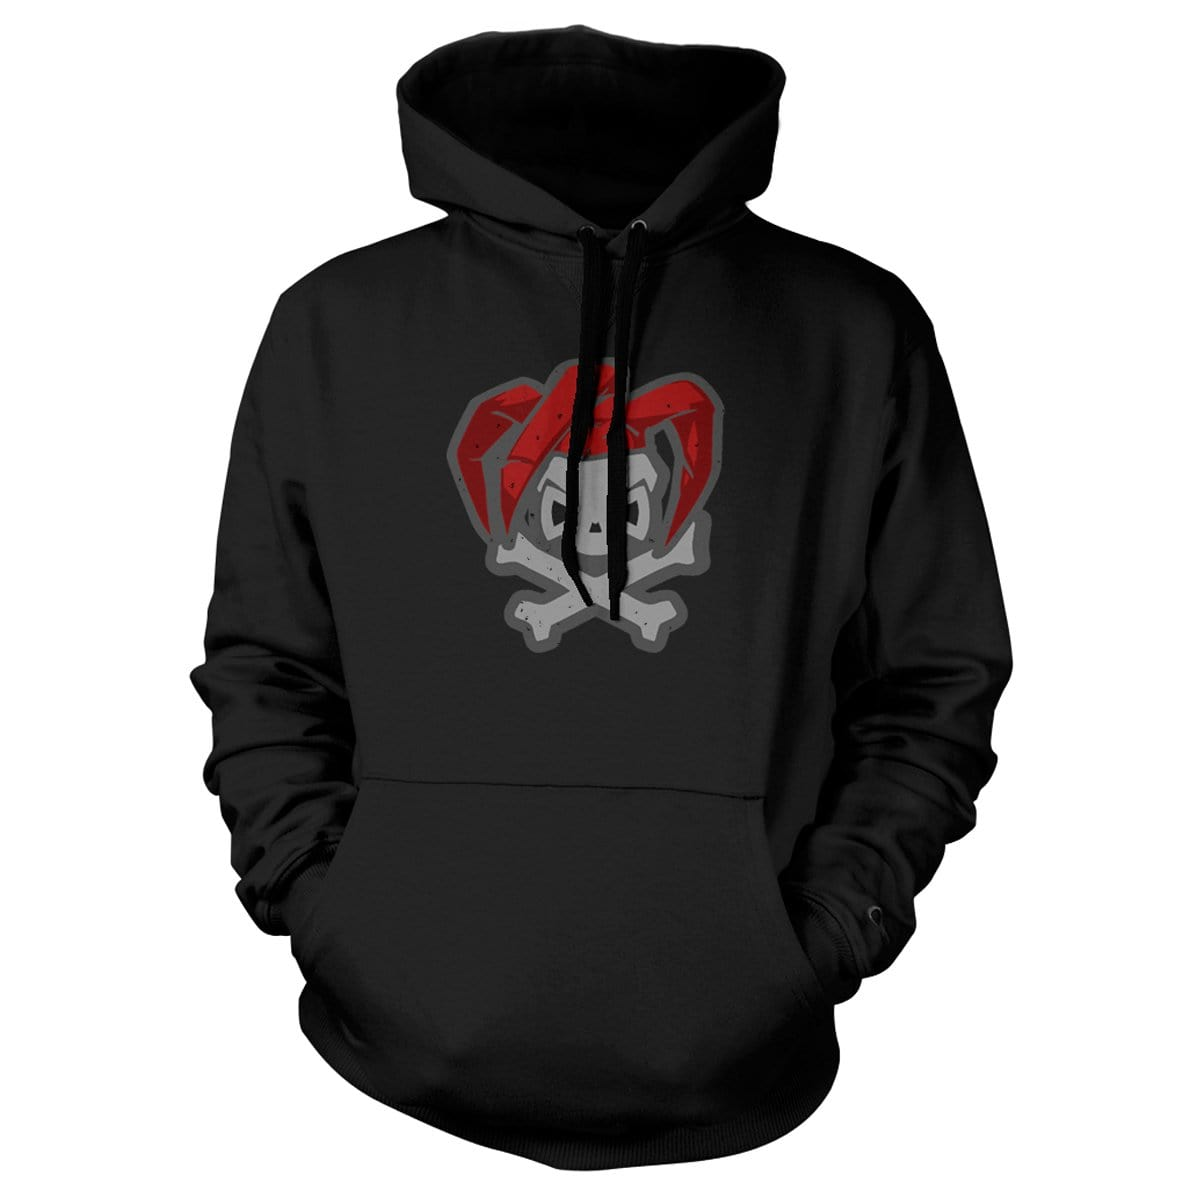 Joker Hoodie - Black - Hoodies - Pipe Hitters Union